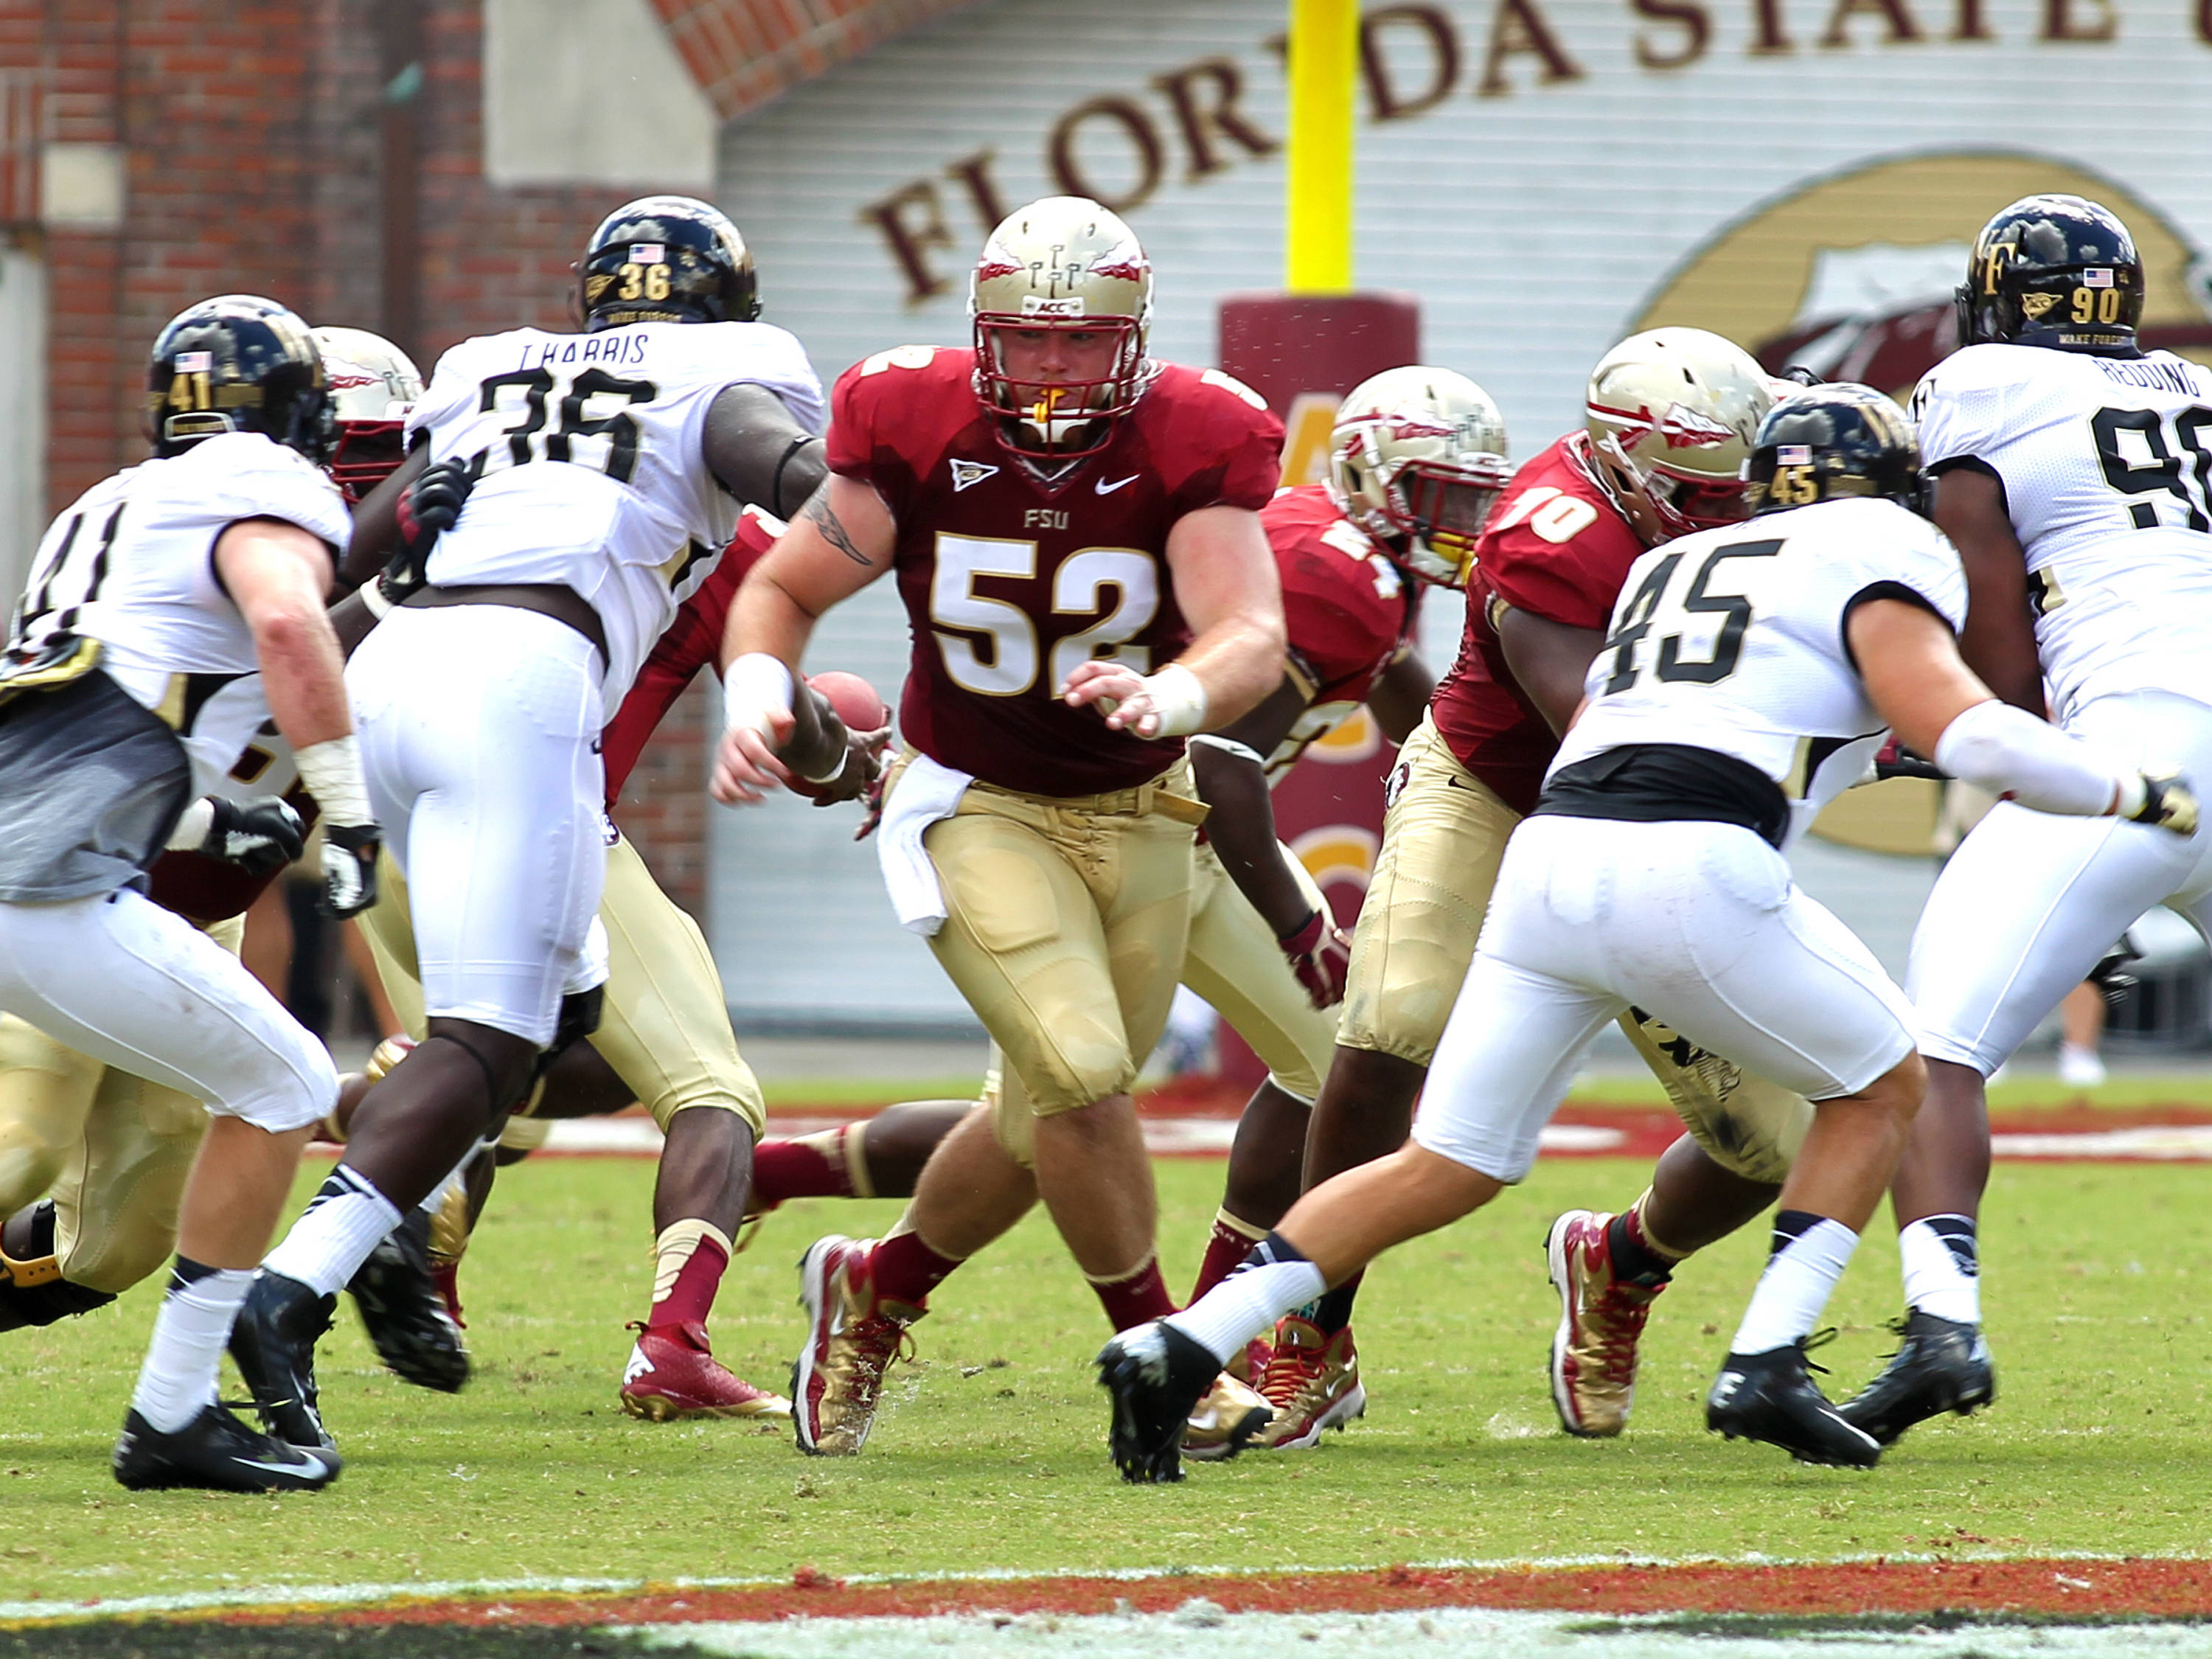 Bryan Stork (52) leading a run, FSU vs Wake Forest, 9/15/12 (Photo by Steve Musco)